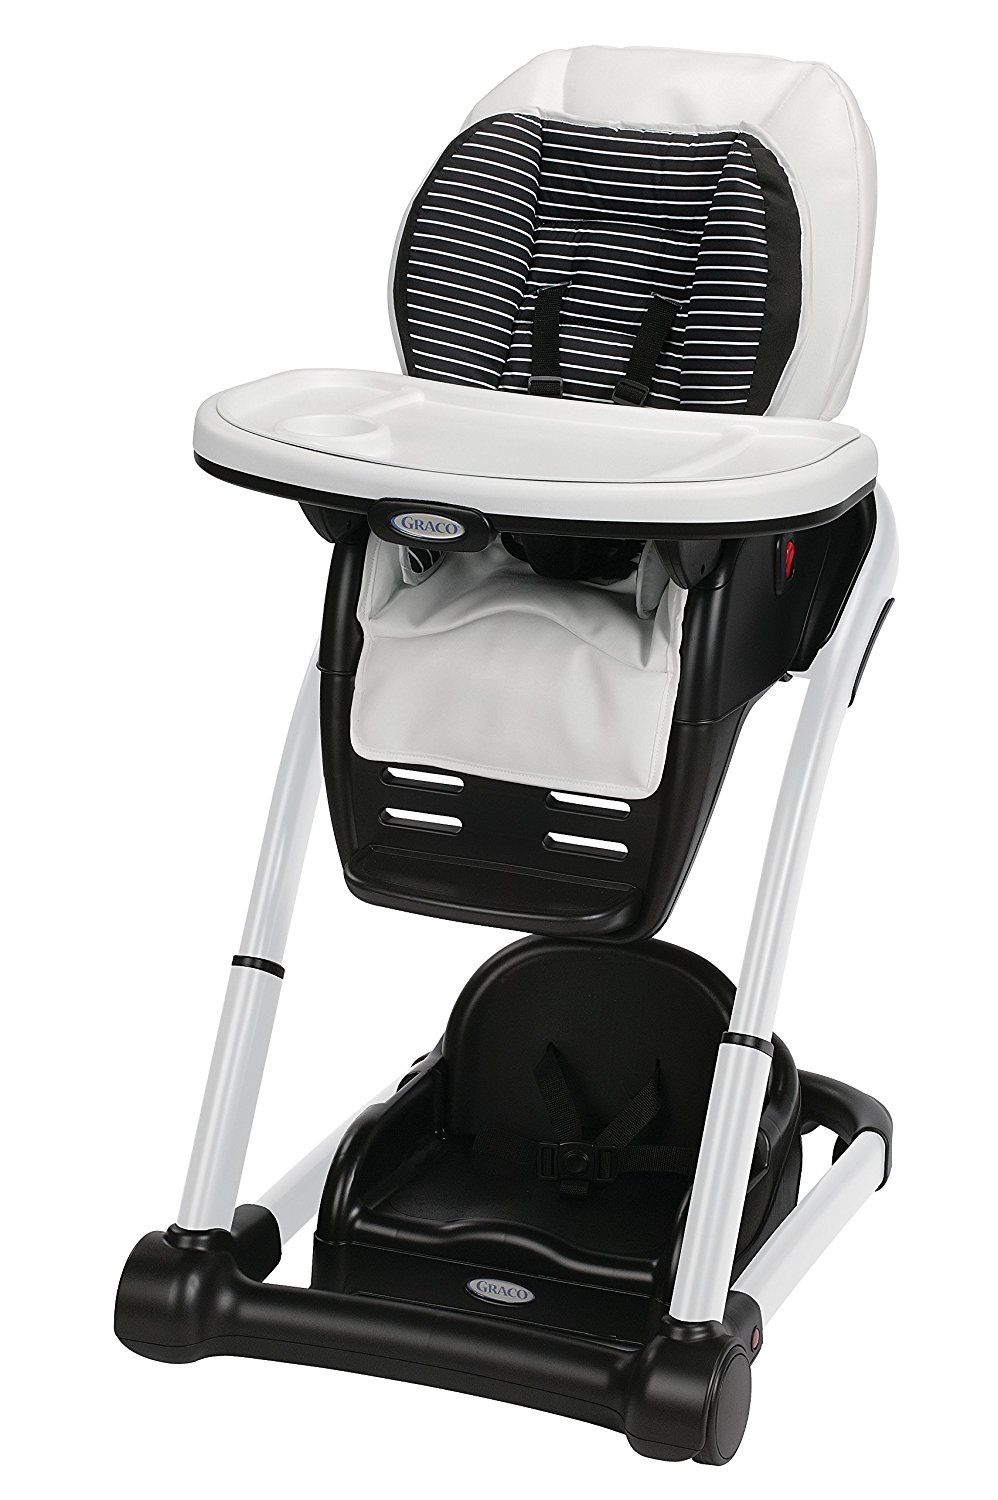 Graco Blossom 6in1 Convertible High Chair, Studio